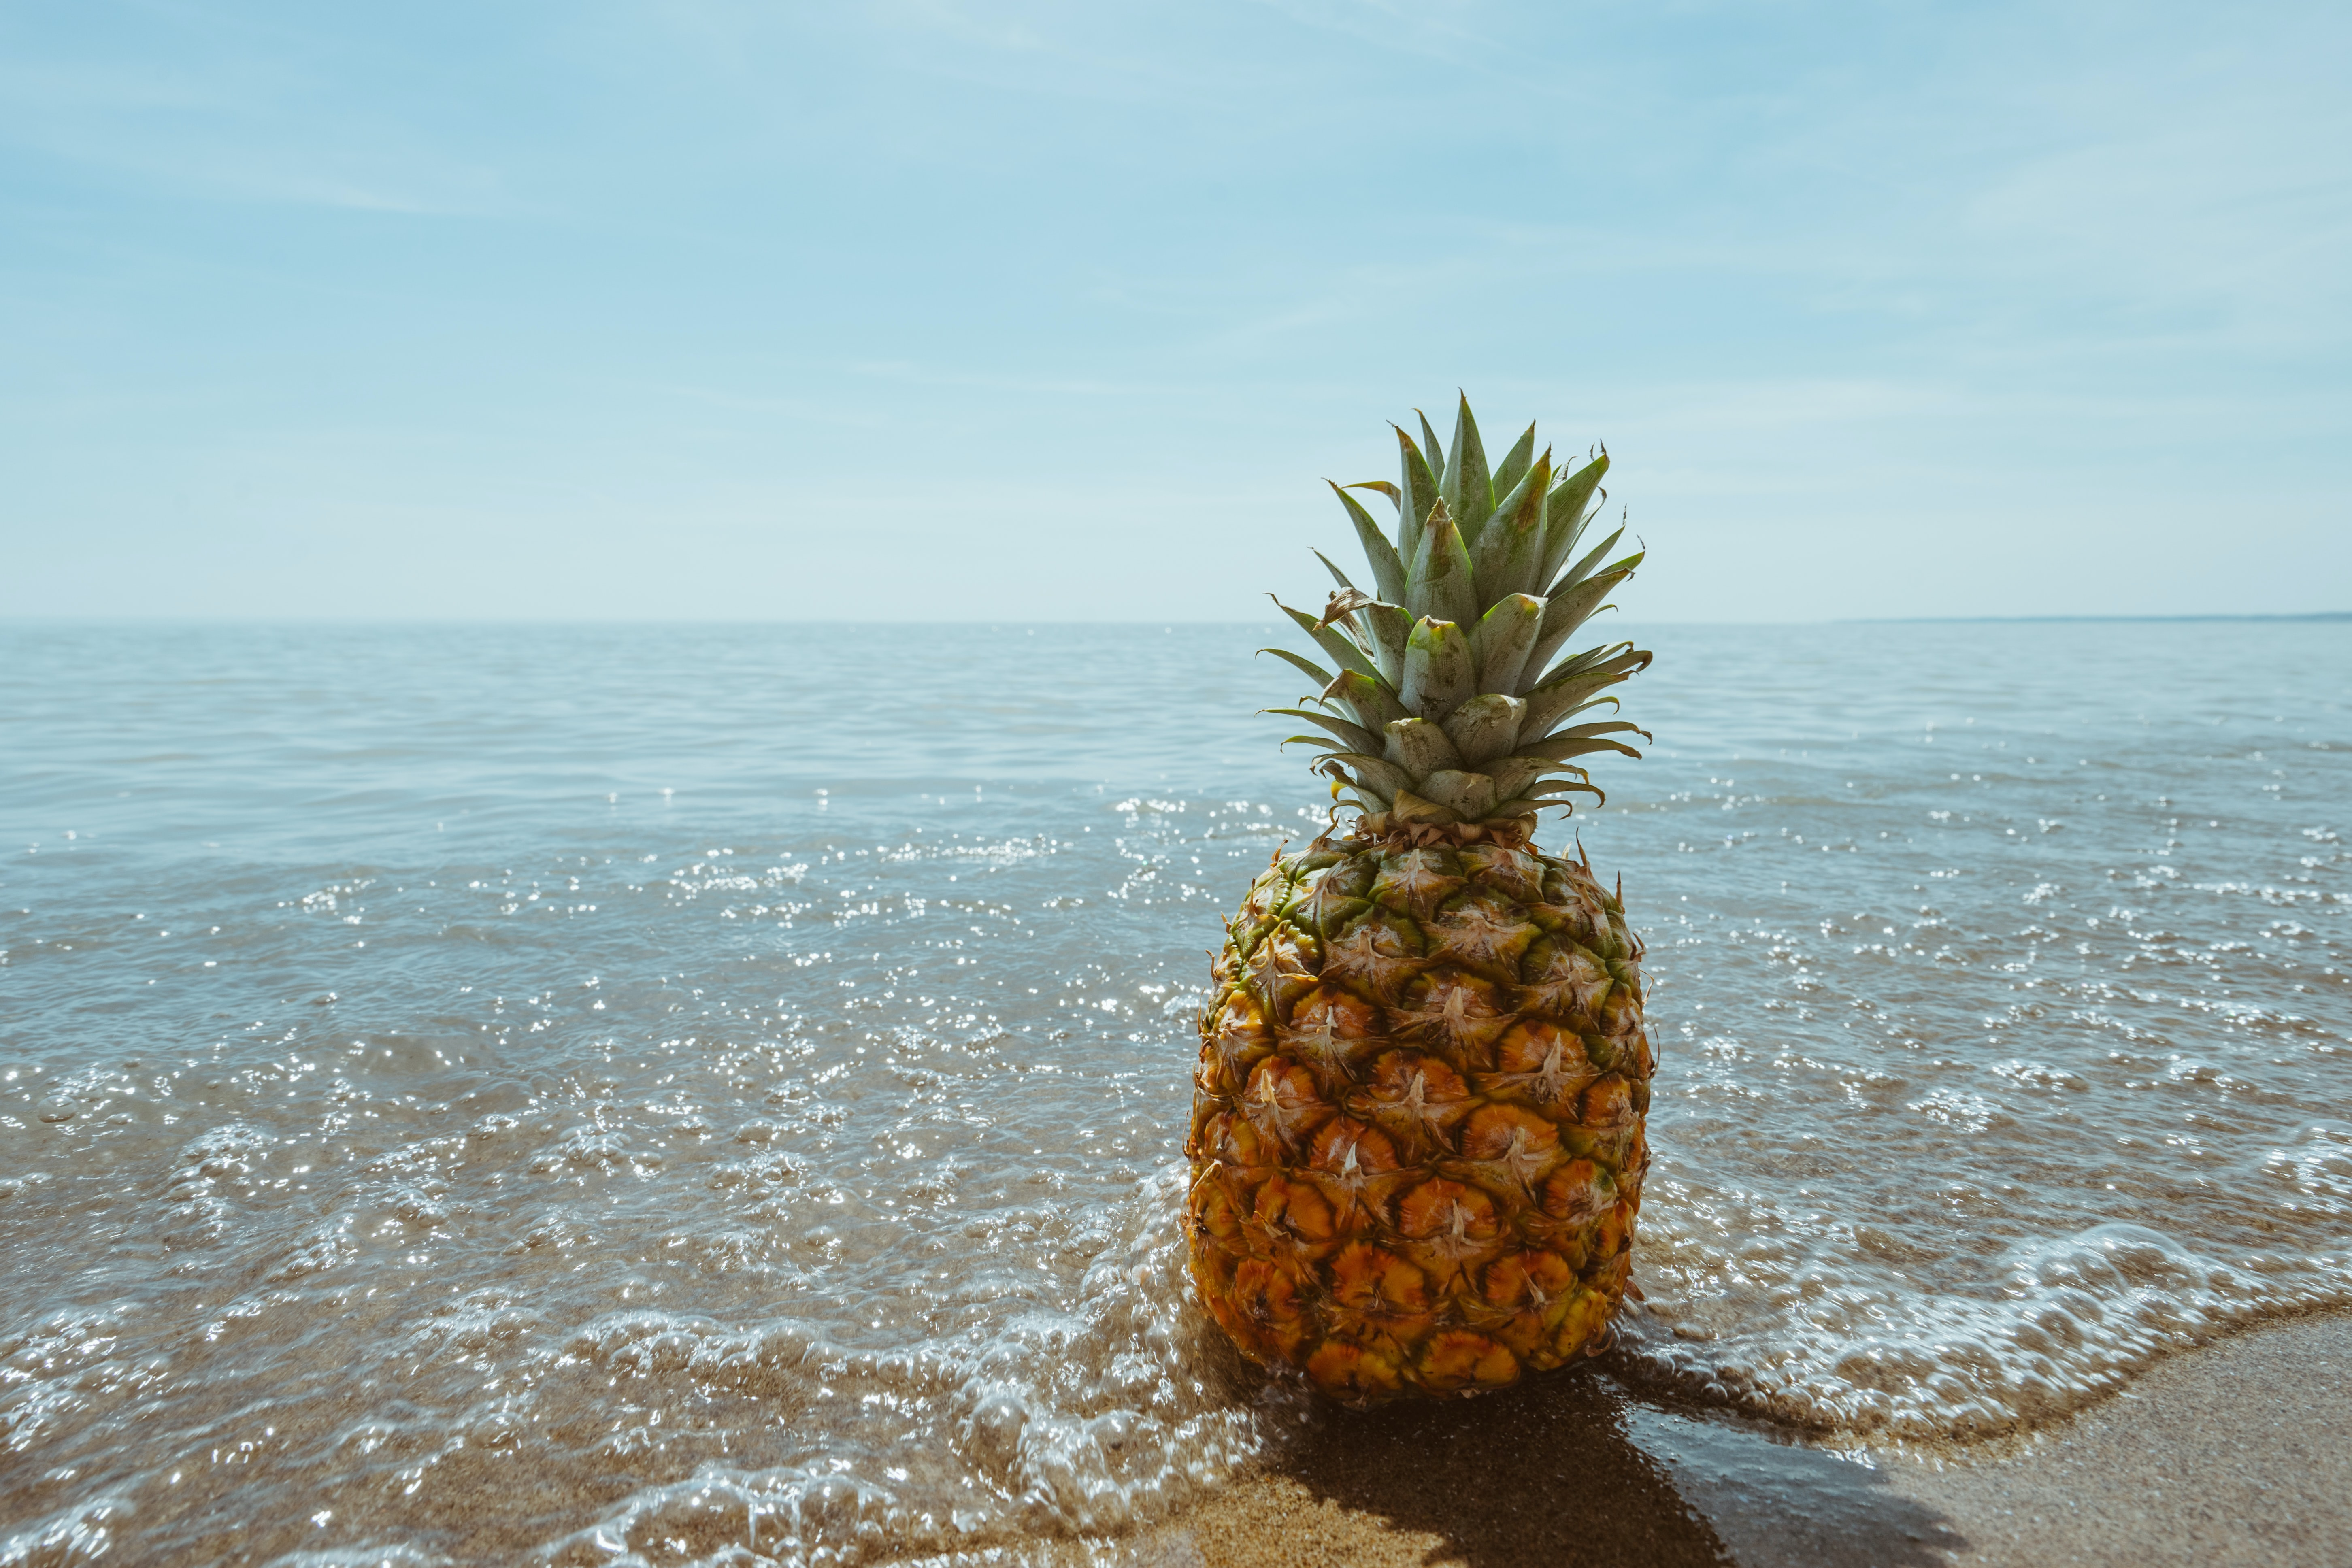 Pineapple on the sandy shore being washed by the ocean